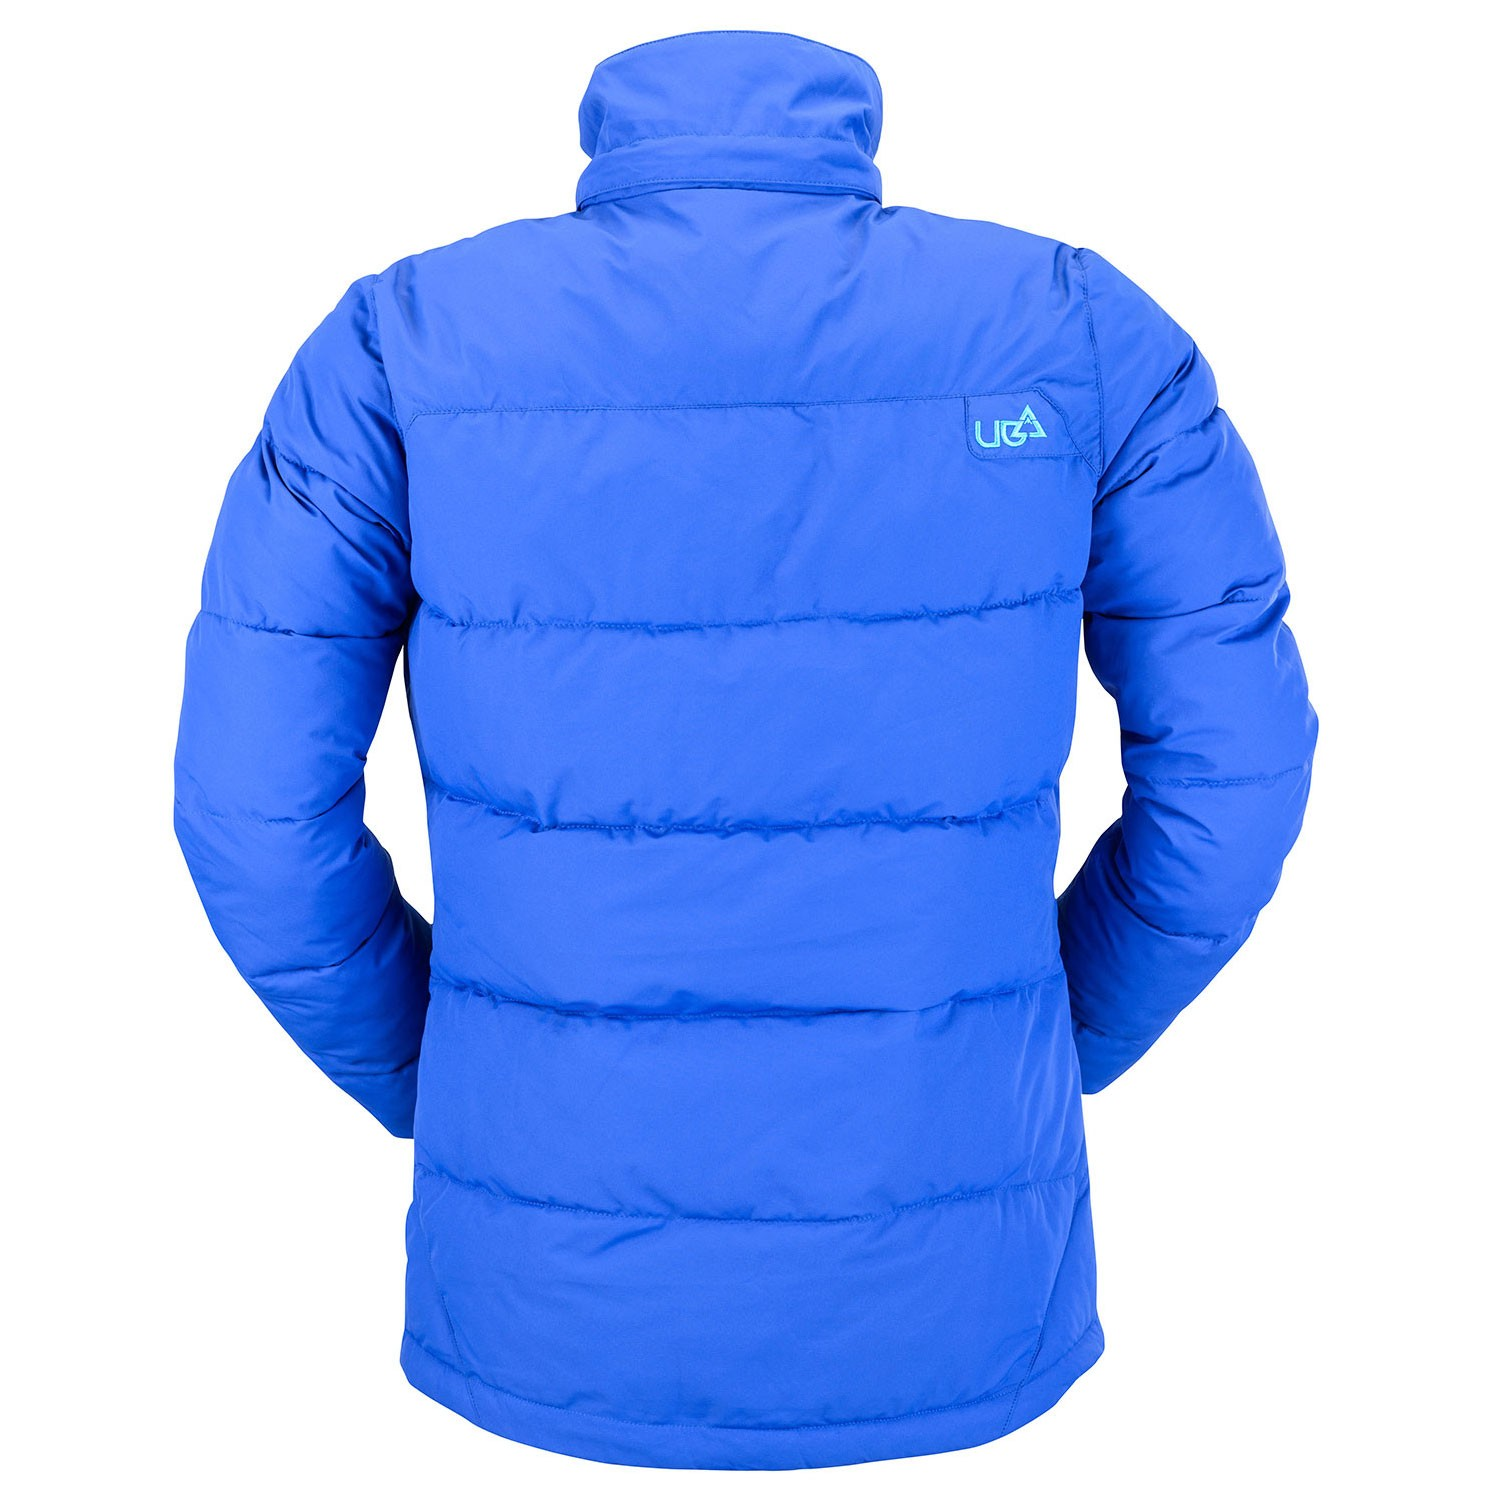 Womens Royal Blue Puffer Jacket Ultramarine Free Delivery